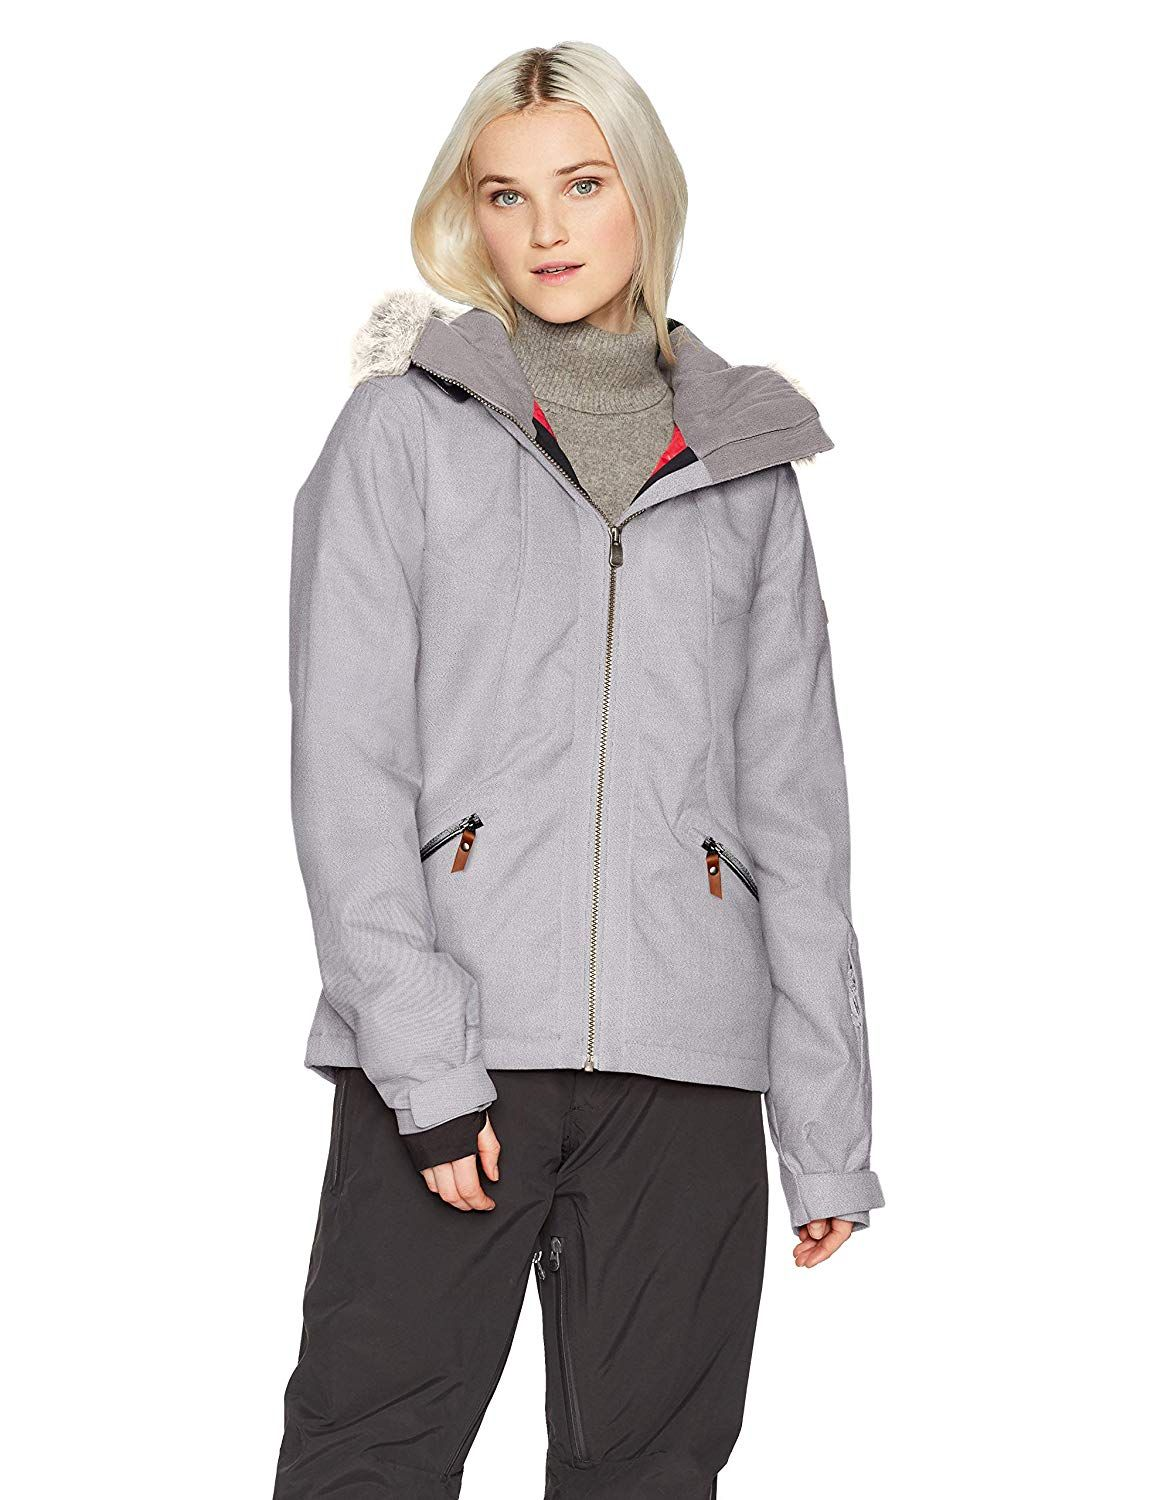 Roxy Women S Atmosphere Snow Jacket Read More At The Image Link This Is An Affiliate Link Juniors Jackets Roxy Women Snow Jacket [ 1500 x 1154 Pixel ]